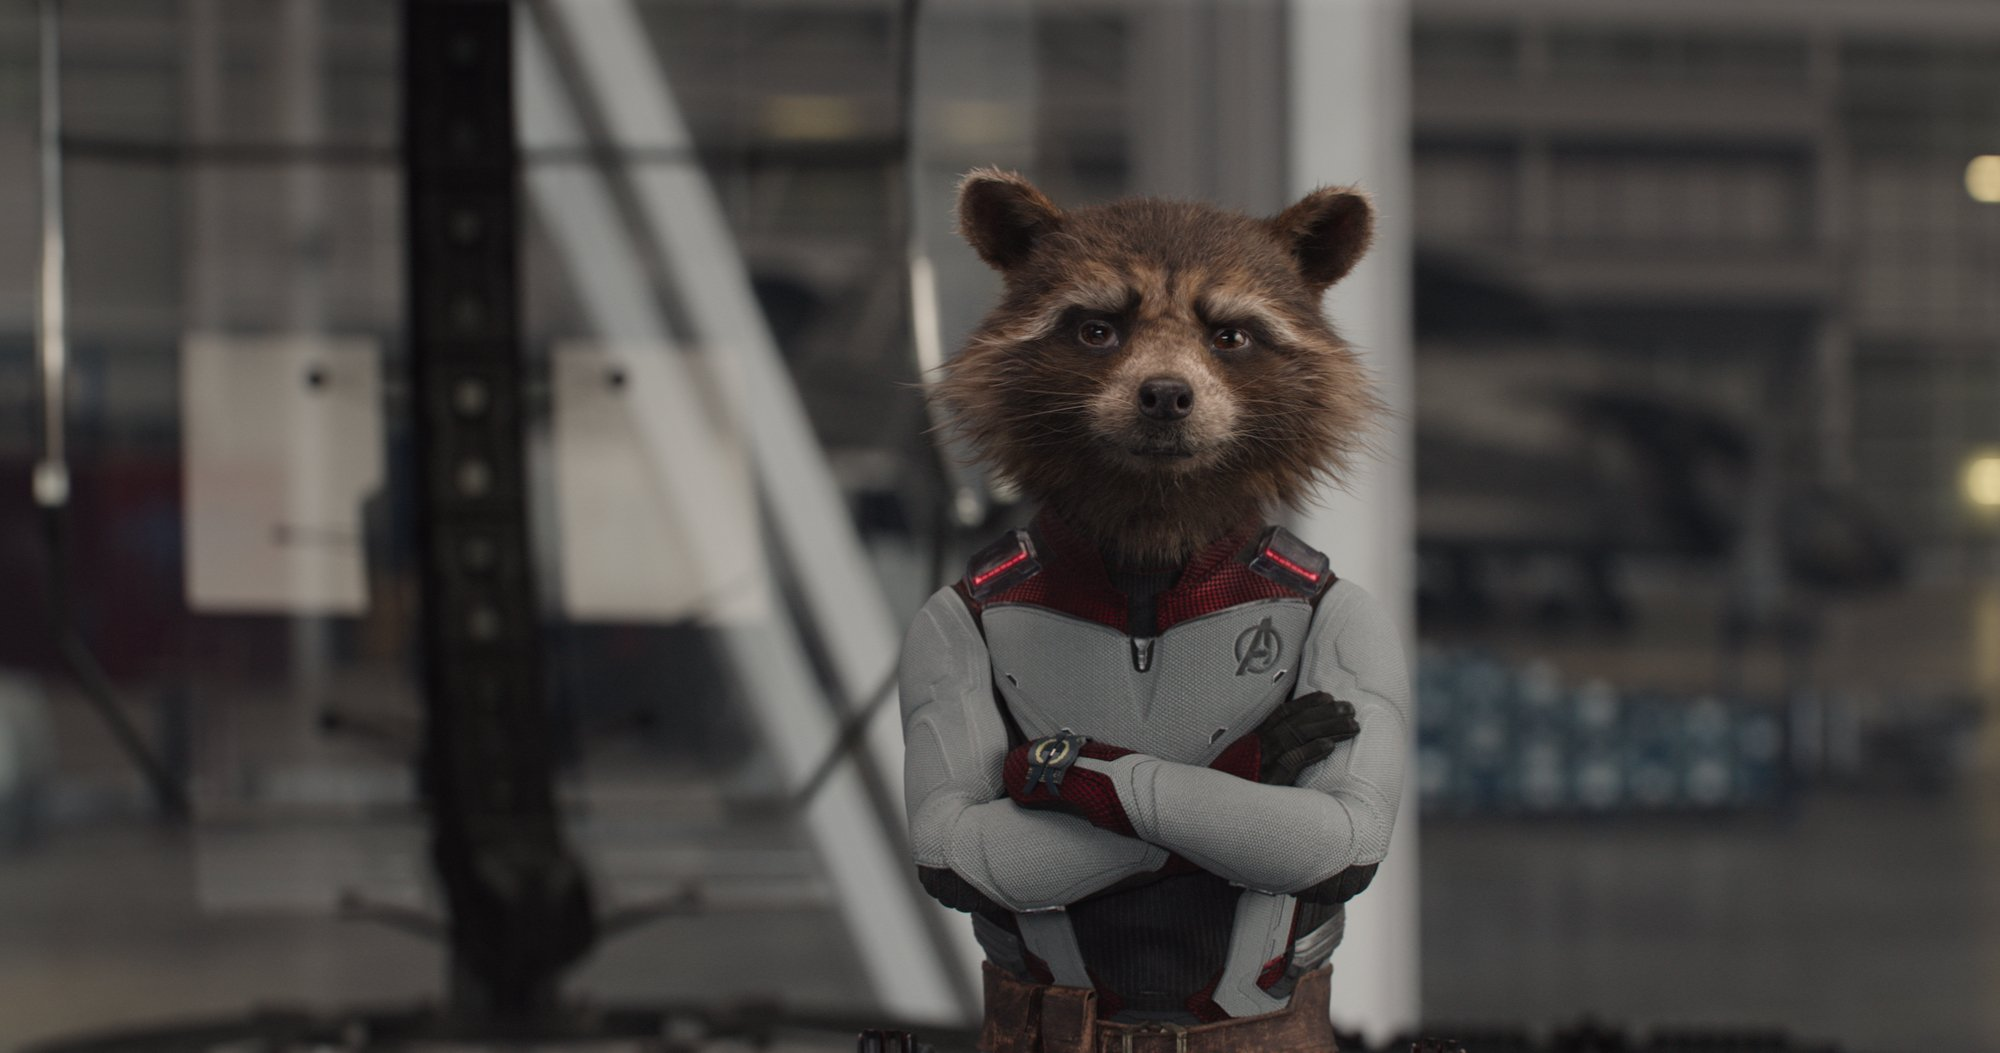 Photo du film Avengers: Endgame avec Rocket Raccoon en costume de chrononaute